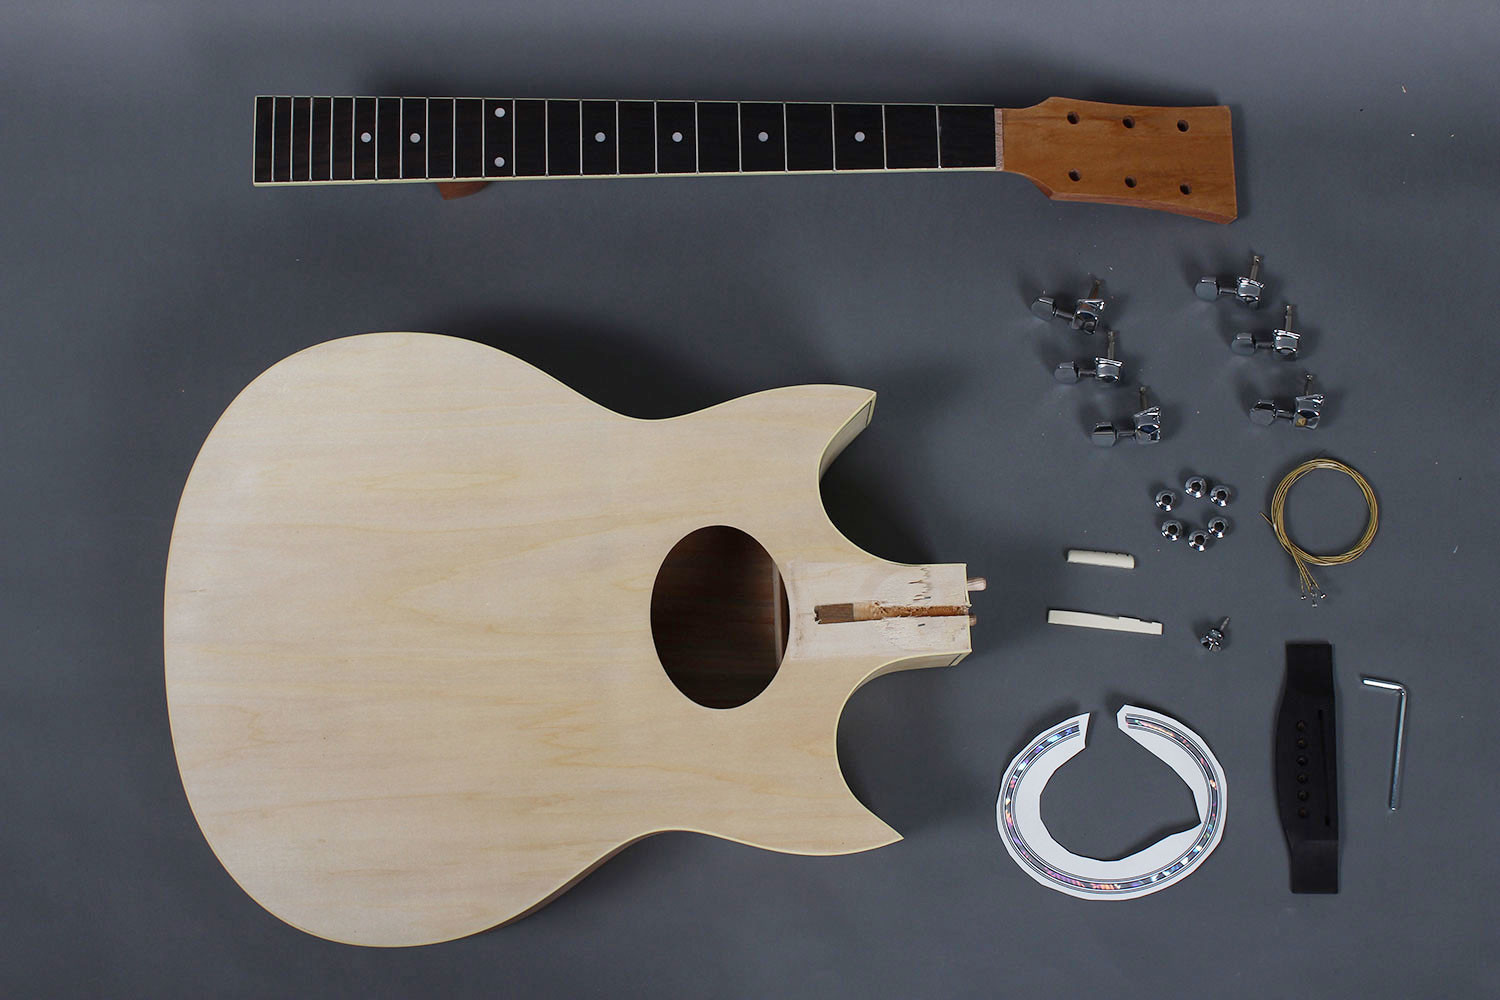 Best ideas about DIY Acoustic Guitar Kit . Save or Pin Jumbo Double Cutaway Acoustic Guitar kit DIY GK S3991DG Now.